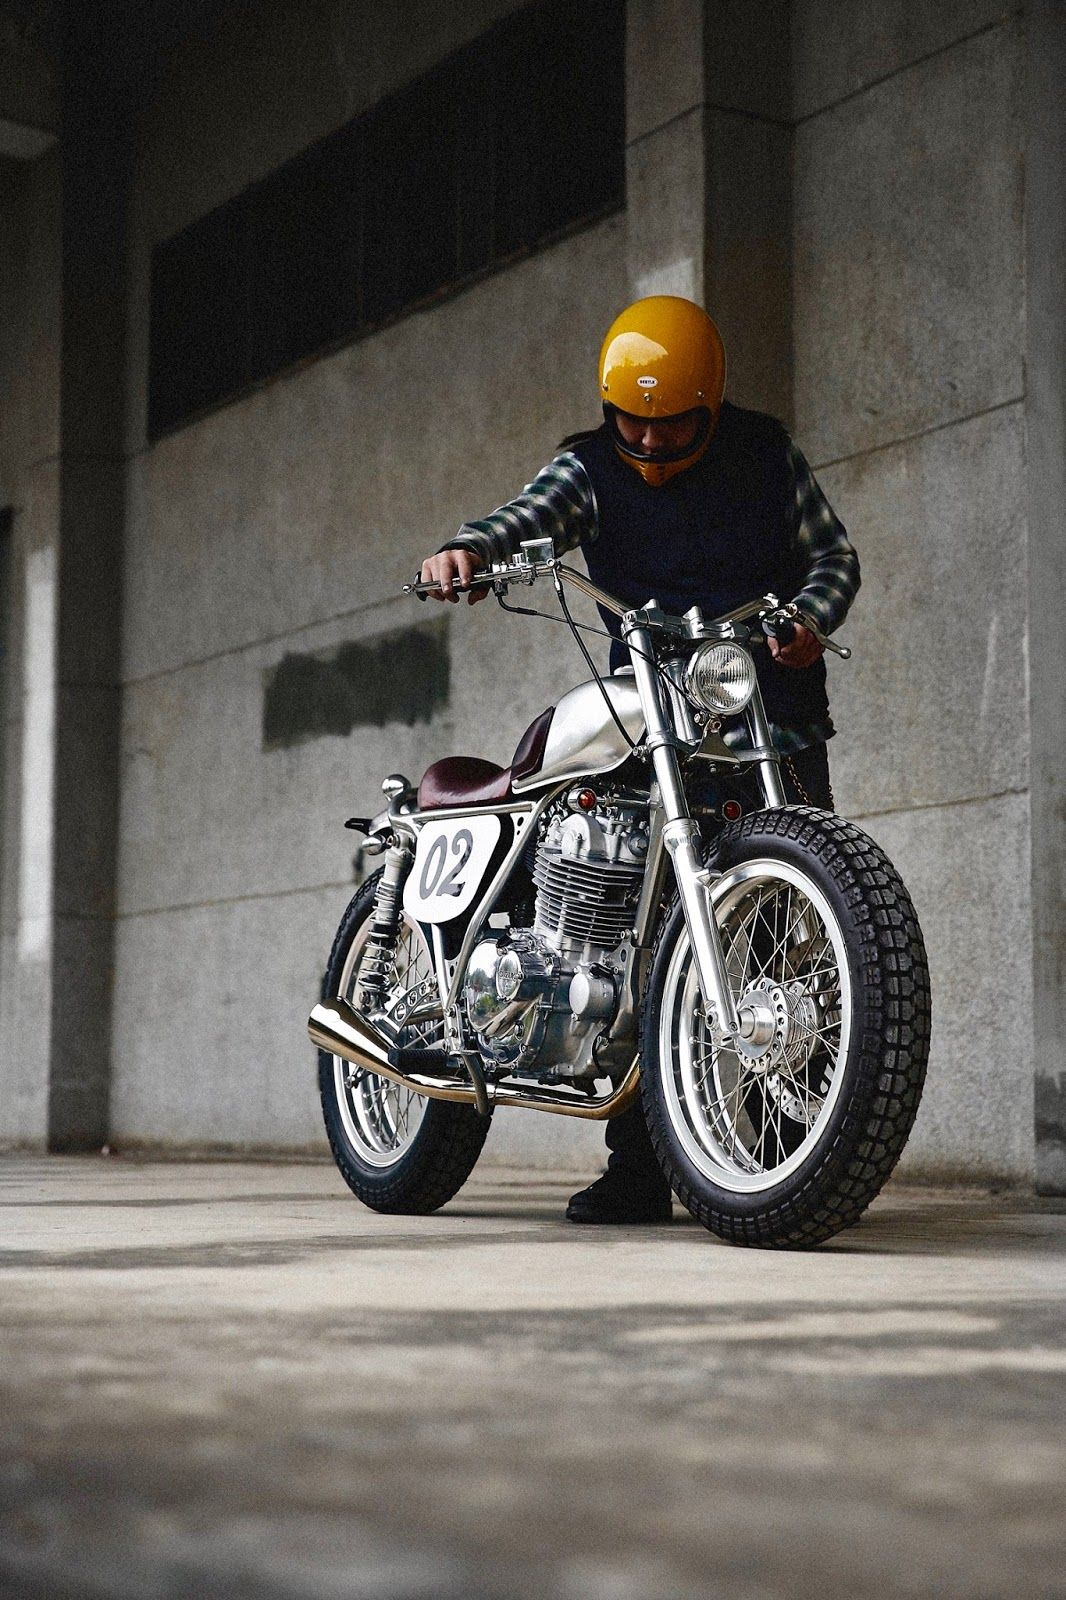 Best Cafe Racer Motorcycles On Instagram Awesome Honda Cb750